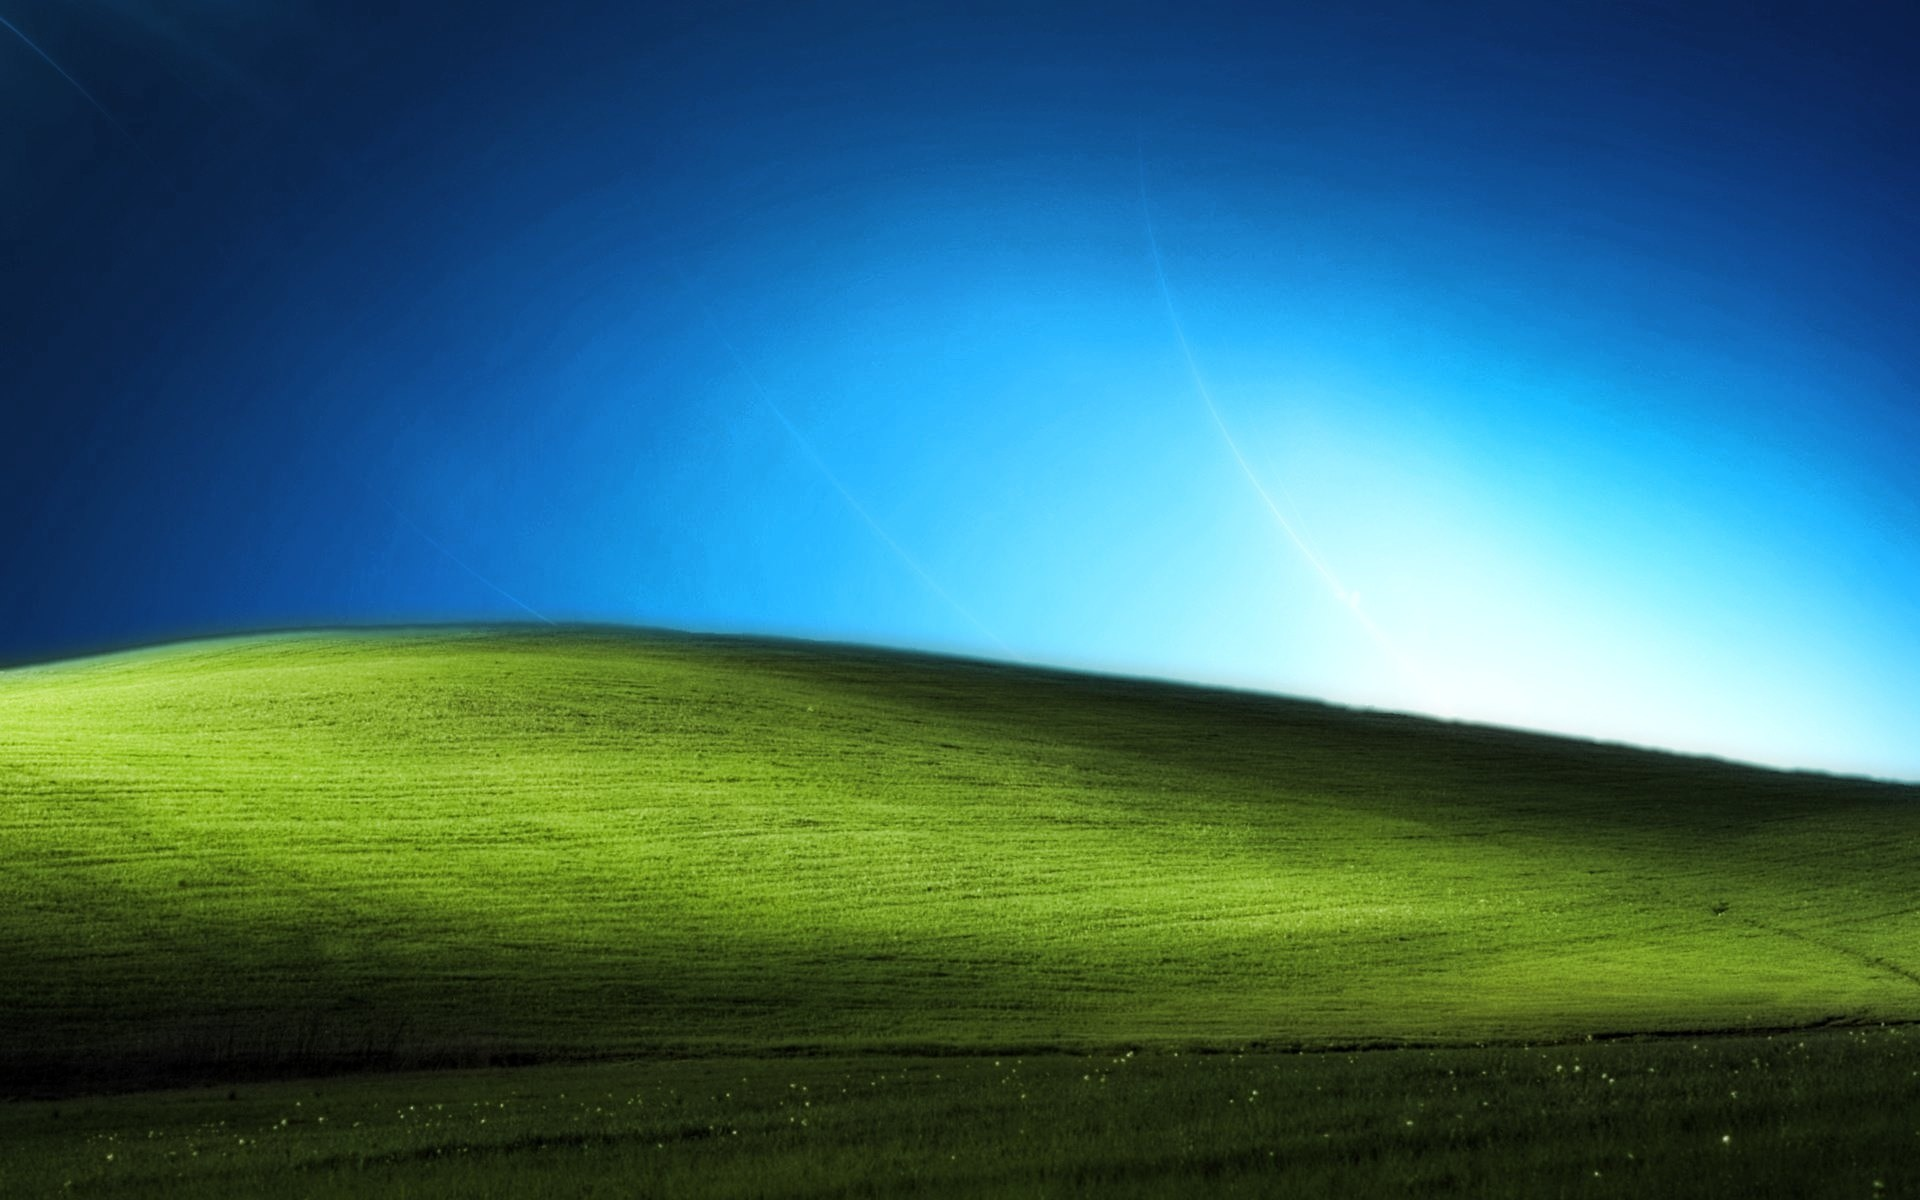 1920x1200 Bild: Windows XP Glückseligkeit wallpapers and stock photos. «